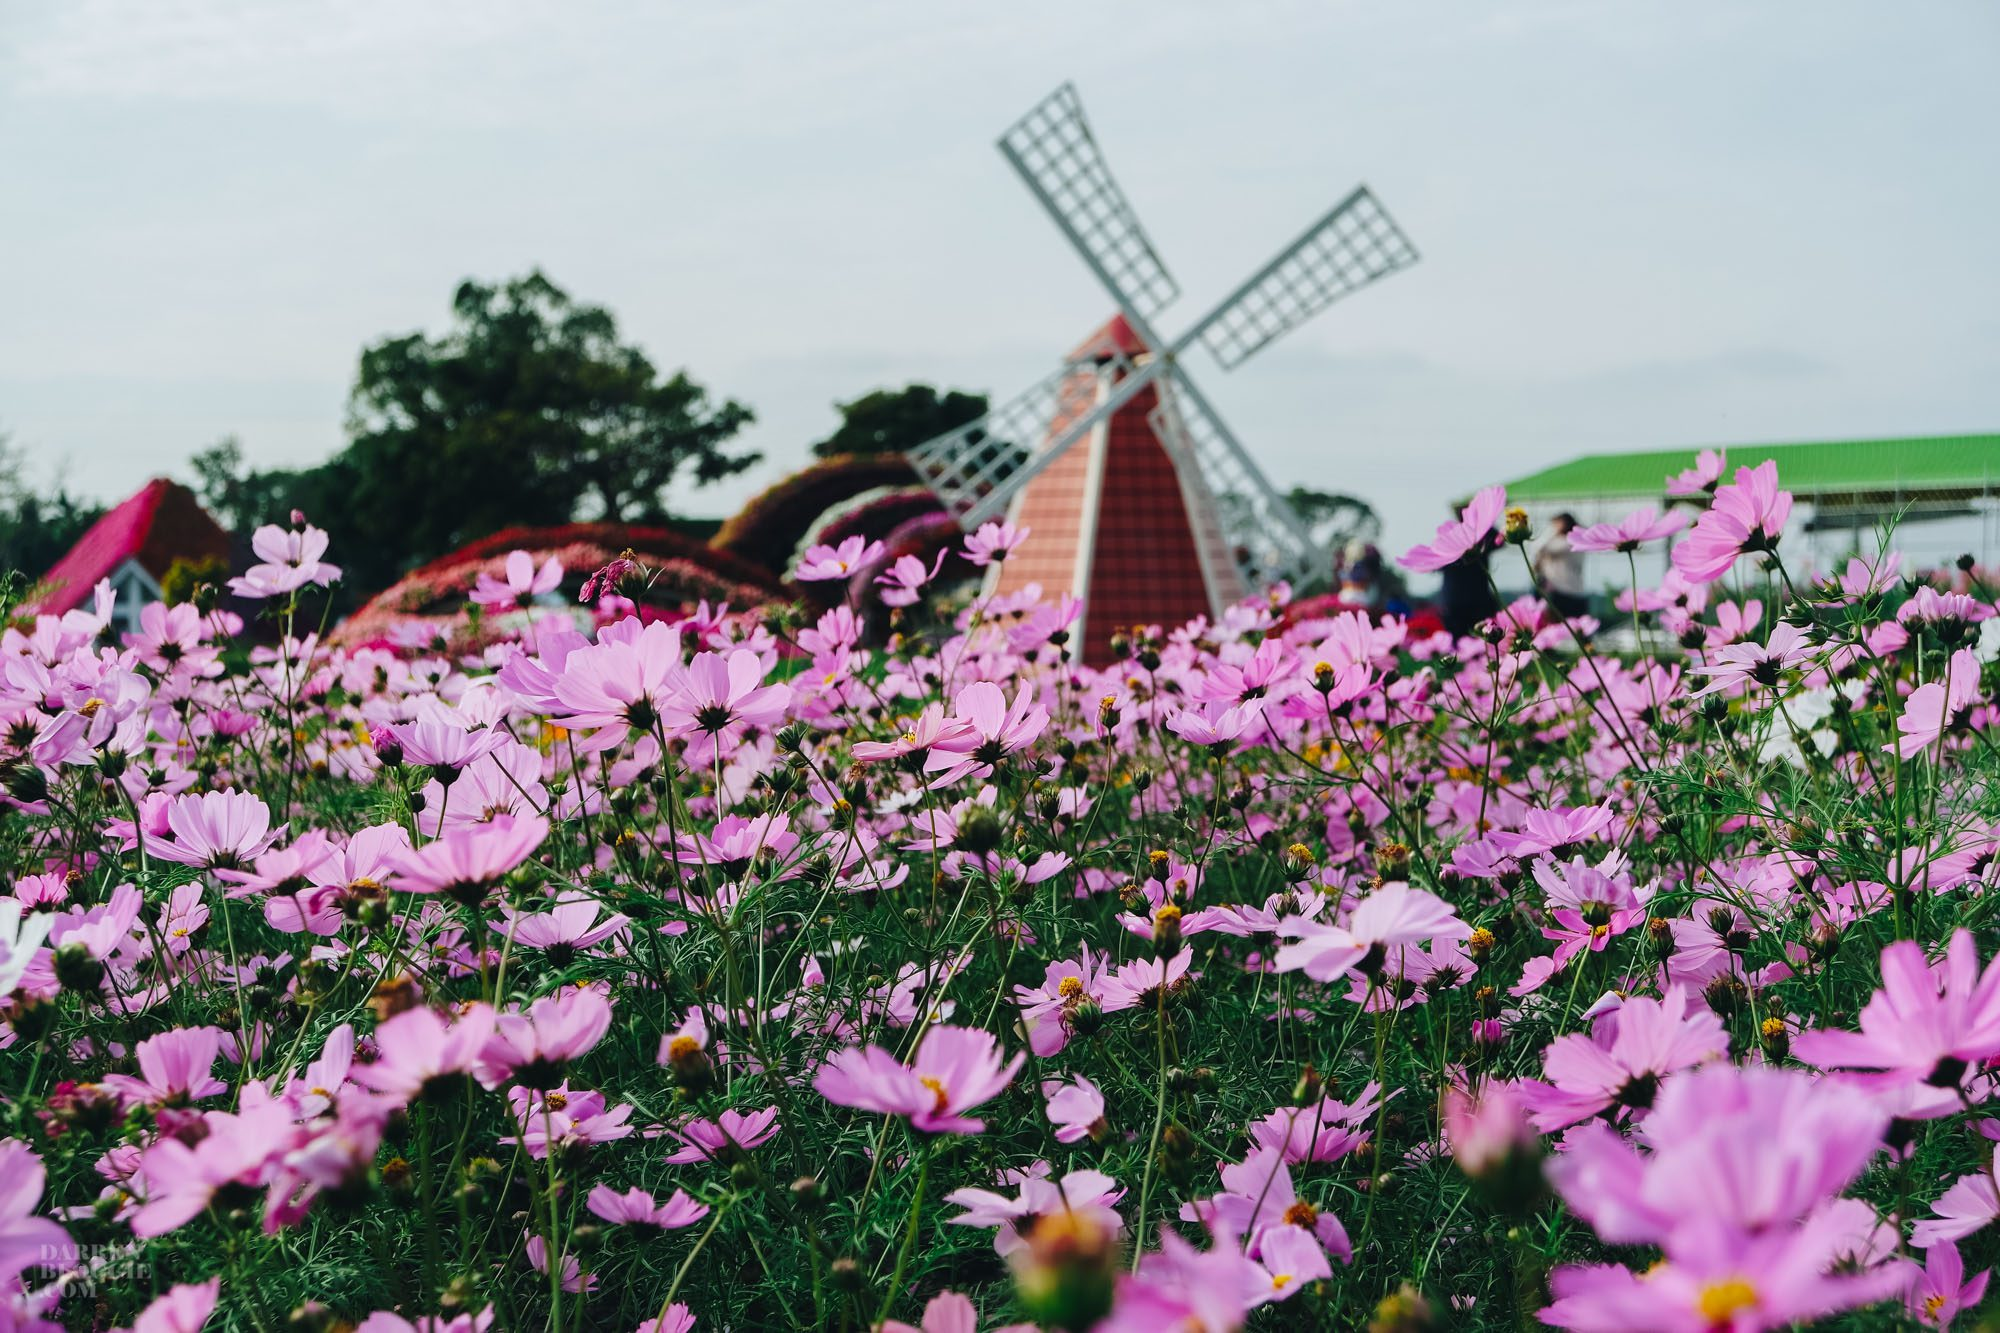 Places to Visit in Taichung - Xinshe Sea of Flowers 新社花海